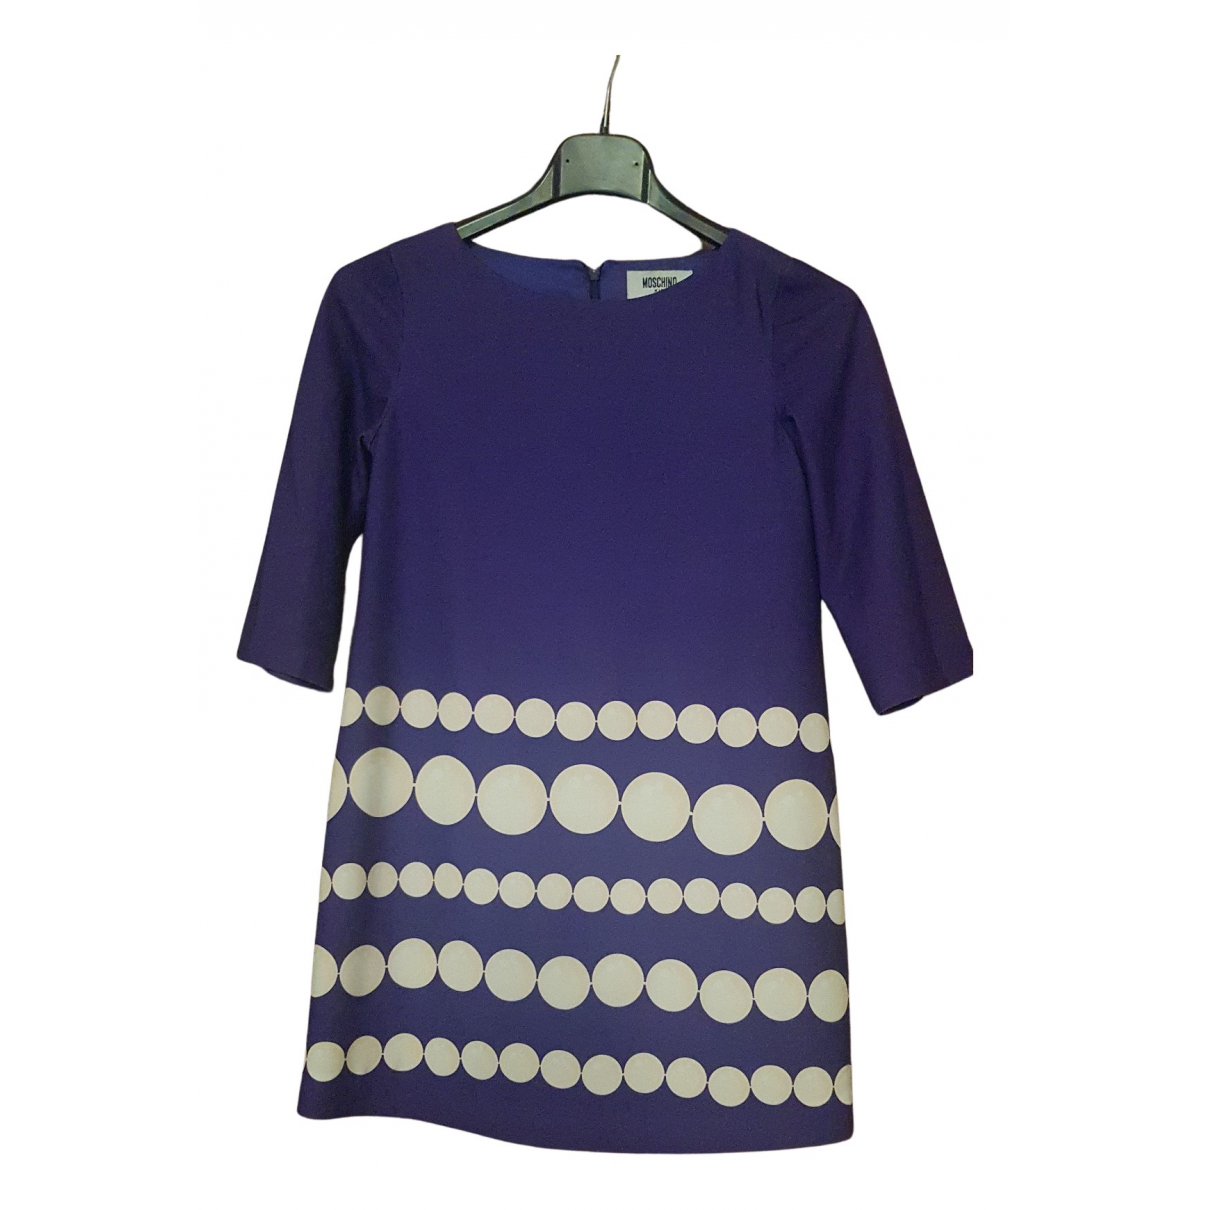 Moschino N Purple dress for Kids 8 years - up to 128cm FR